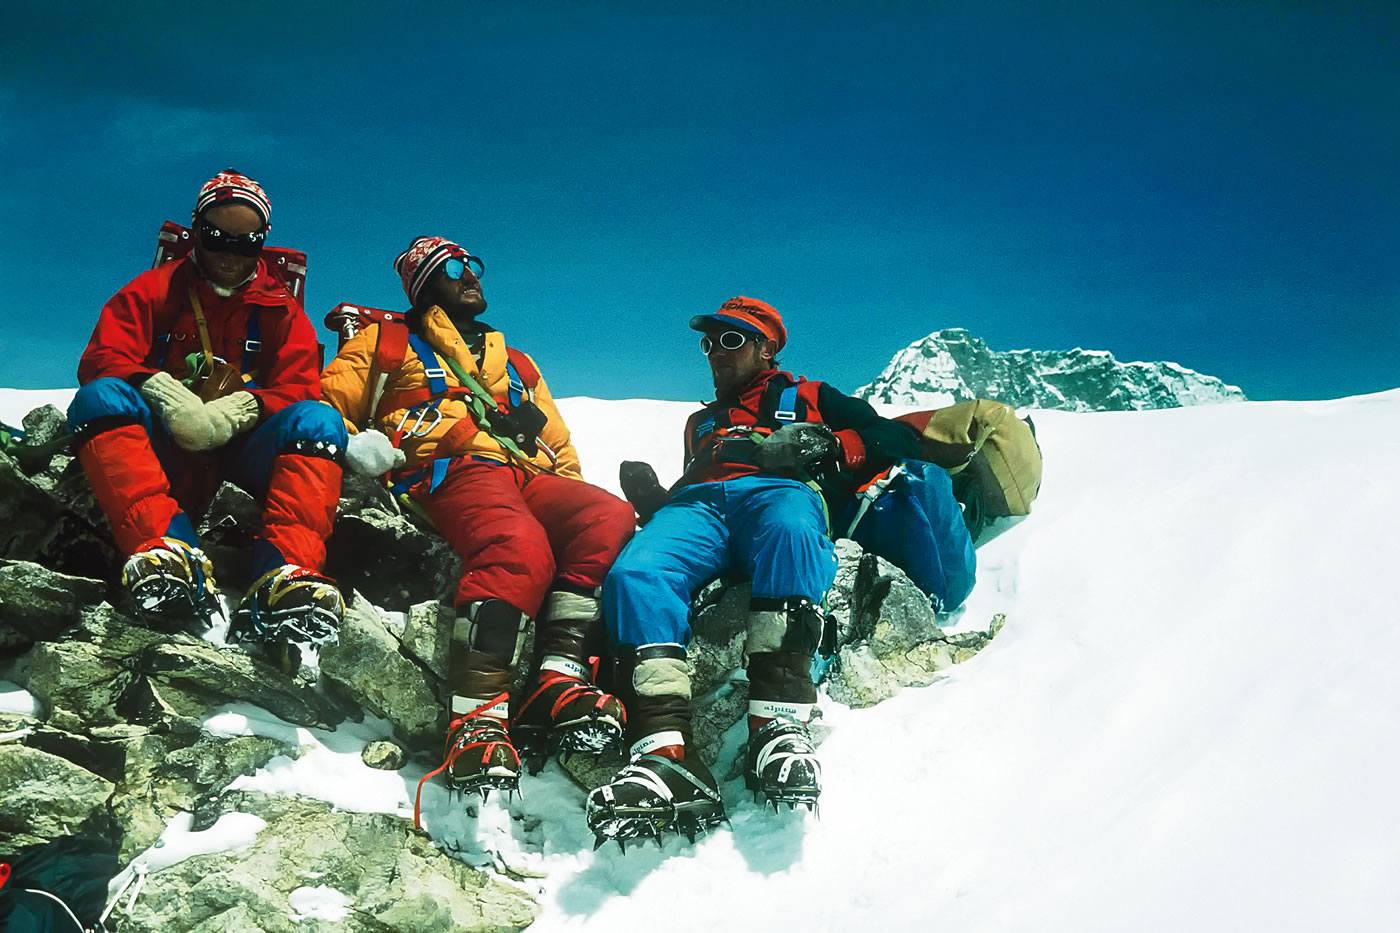 Marko Stremfelj, Marjan Manfreda and Knez during the Everest West Ridge Direct expedition. In Alpinist 27, Andrej Stremfelj wrote: Today what we did seems like madness. [Photo] Andrej Stremfelj collection